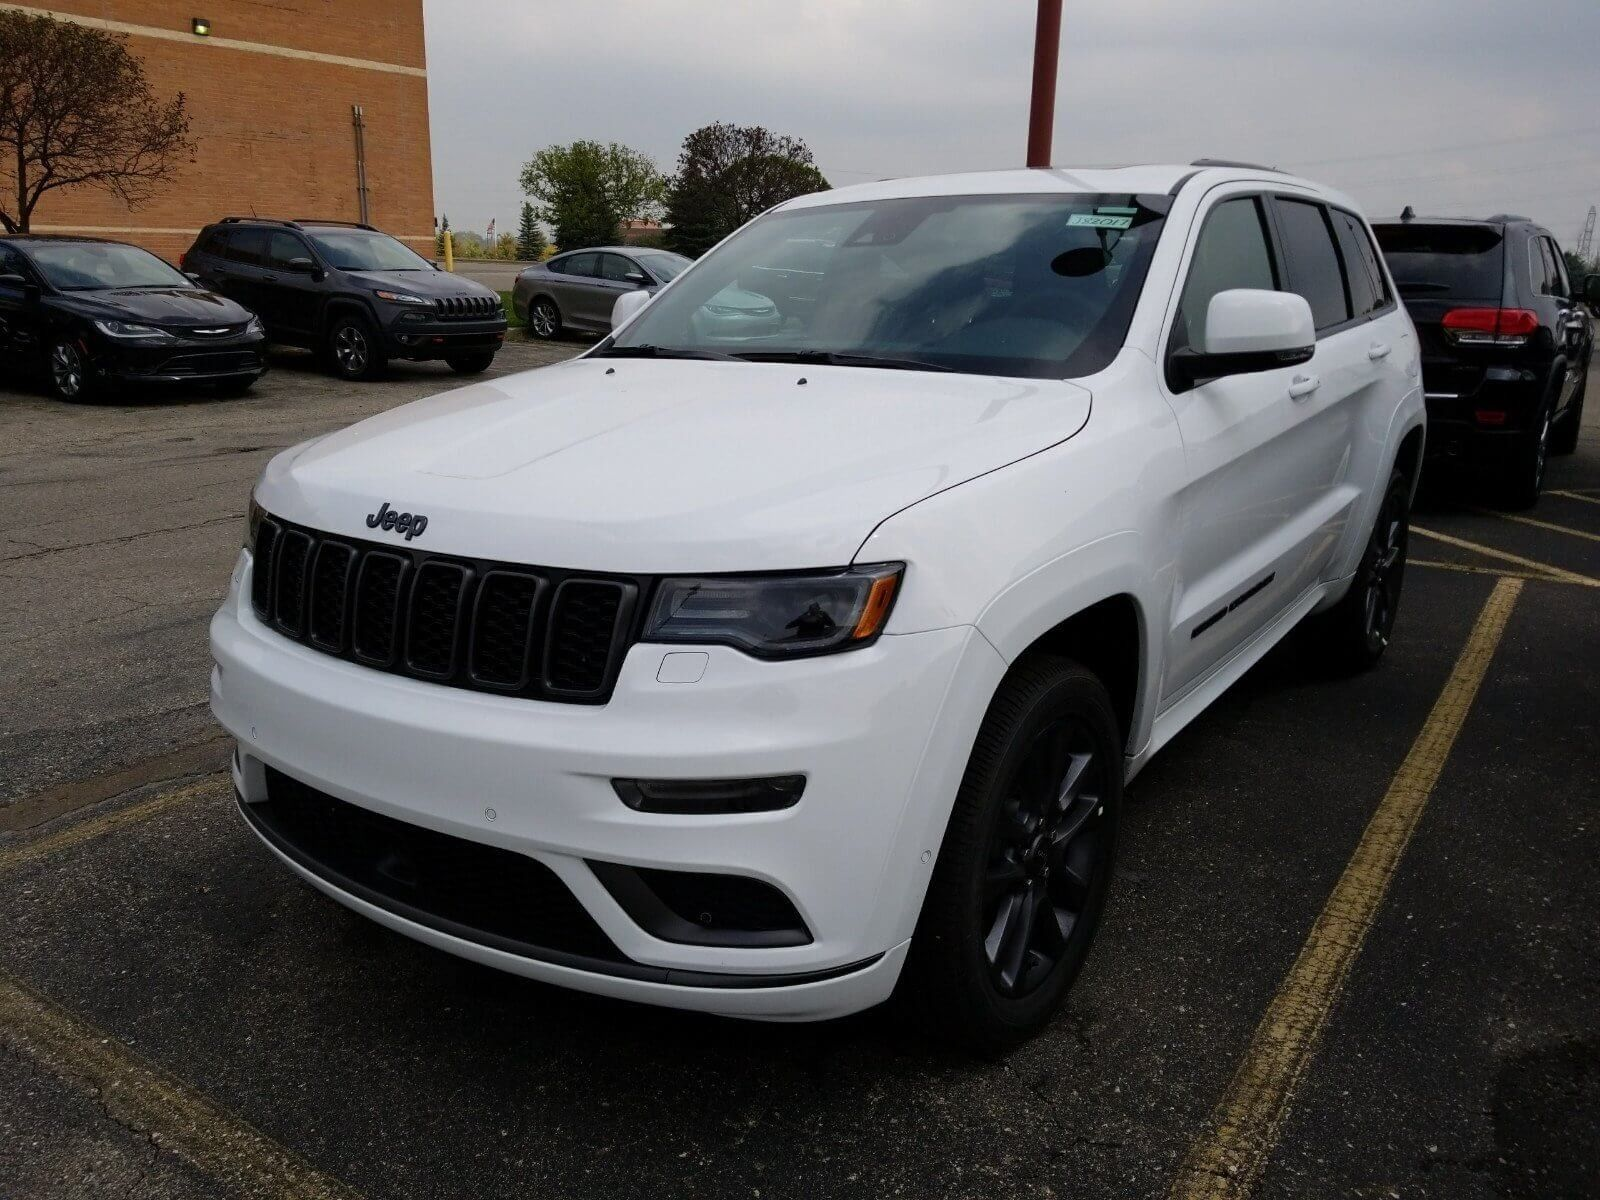 2019 Jeep Grand Cherokee Mpg Overview Jeep Grand Cherokee Jeep